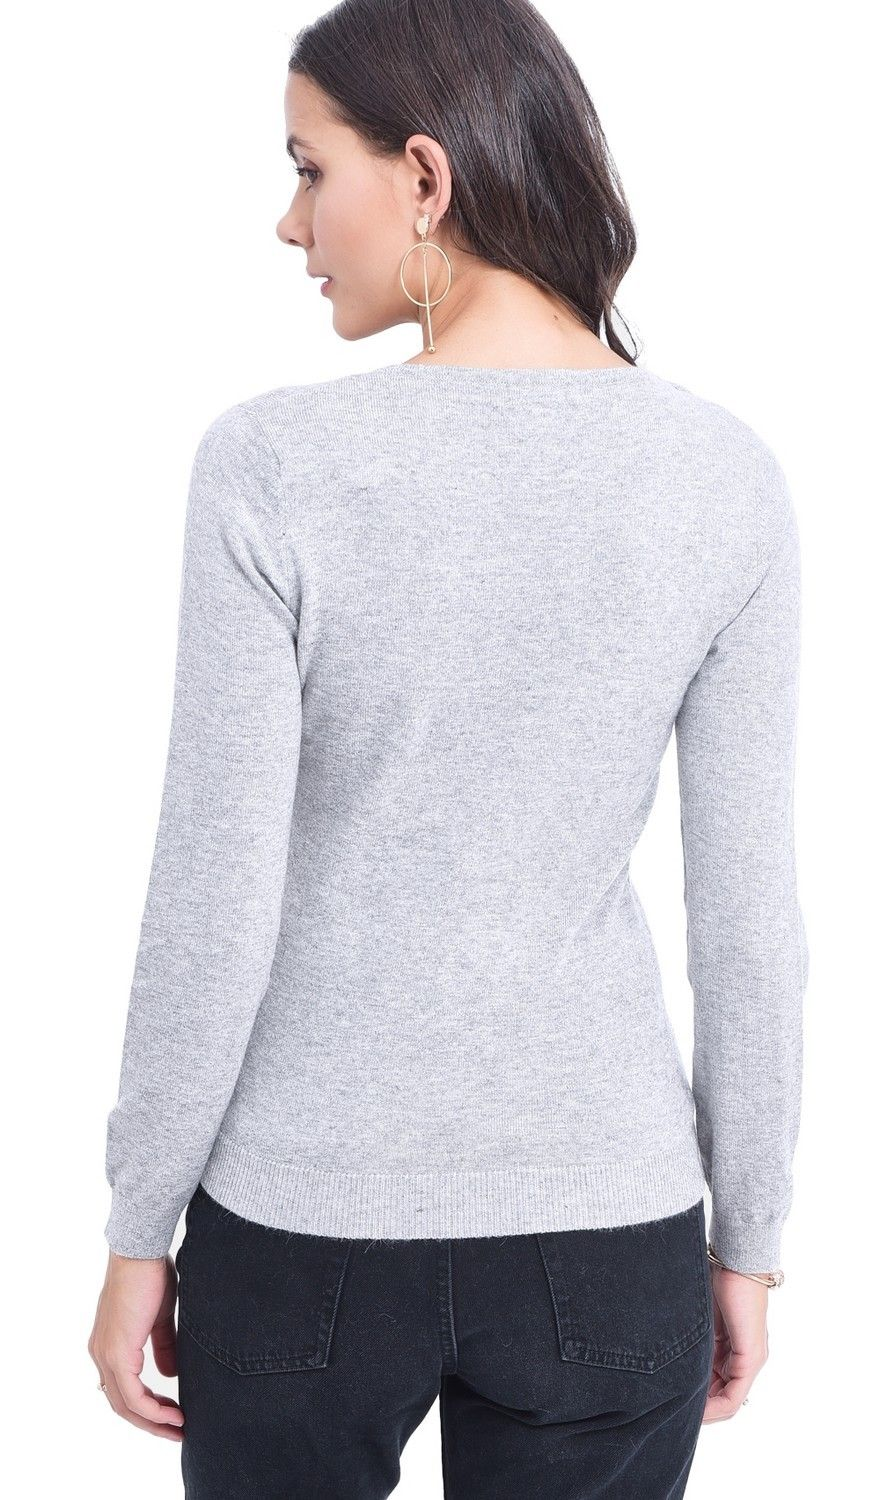 Assuili V-neck Sweater in Light Grey